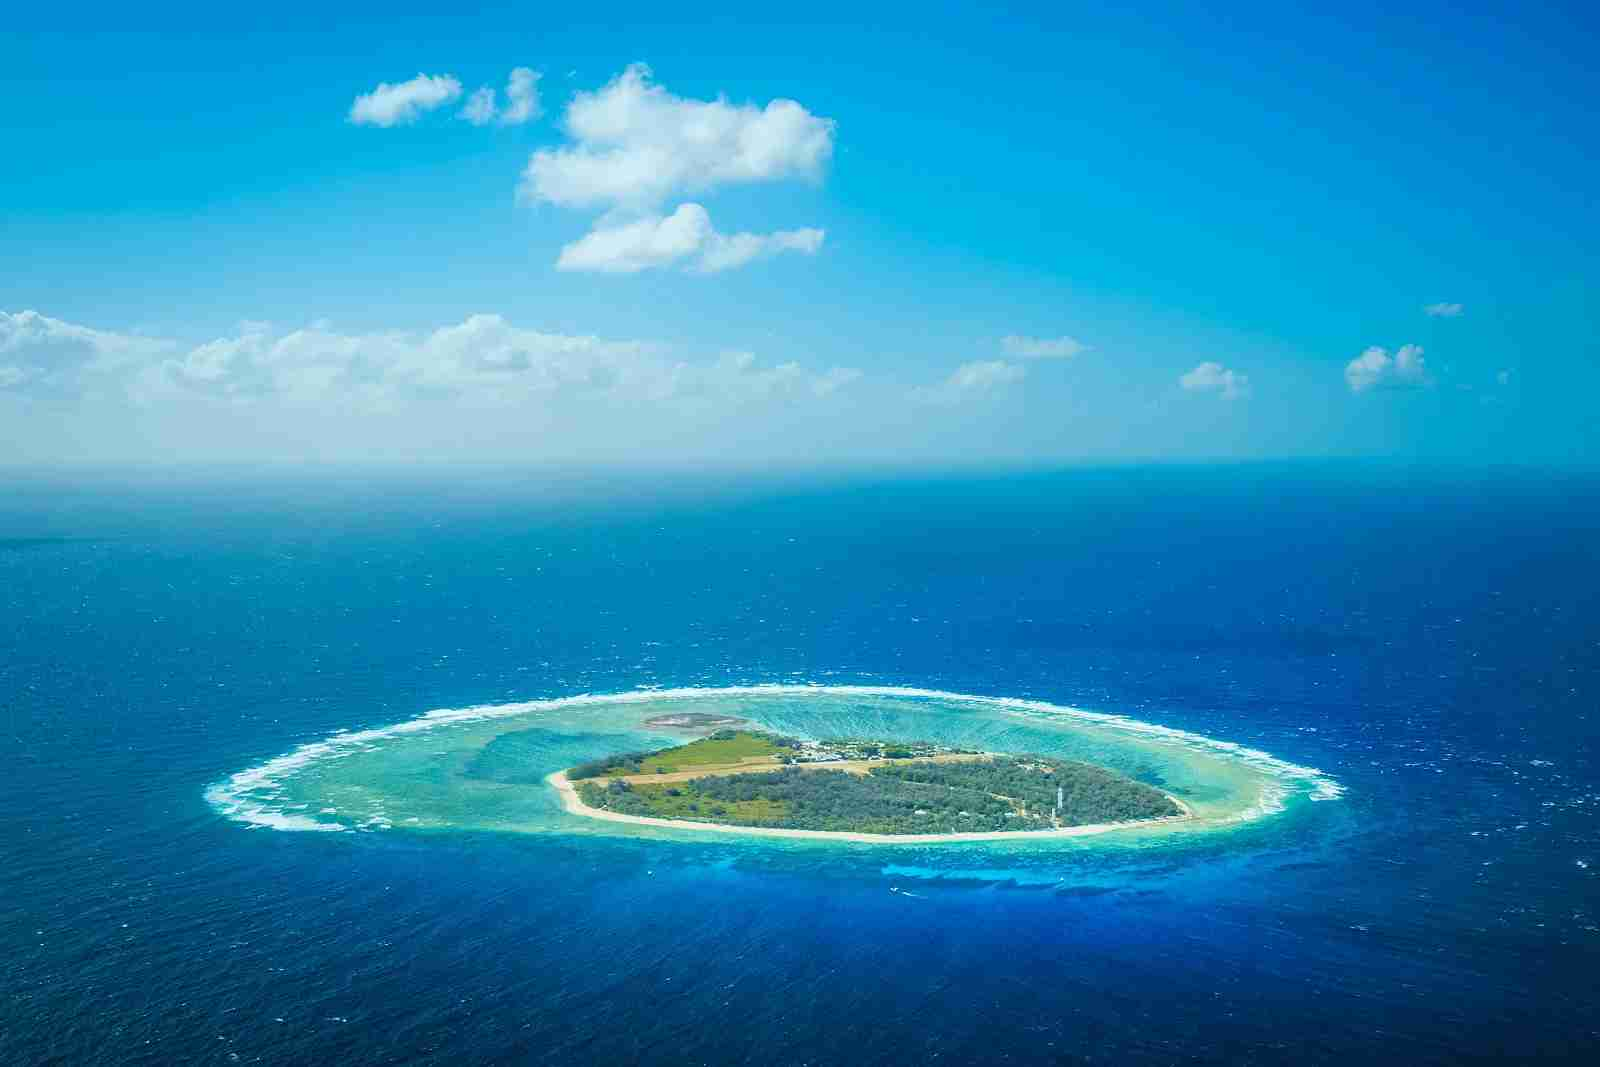 An aerial view of Lady Elliot Island. (Photo via Shutterstock)